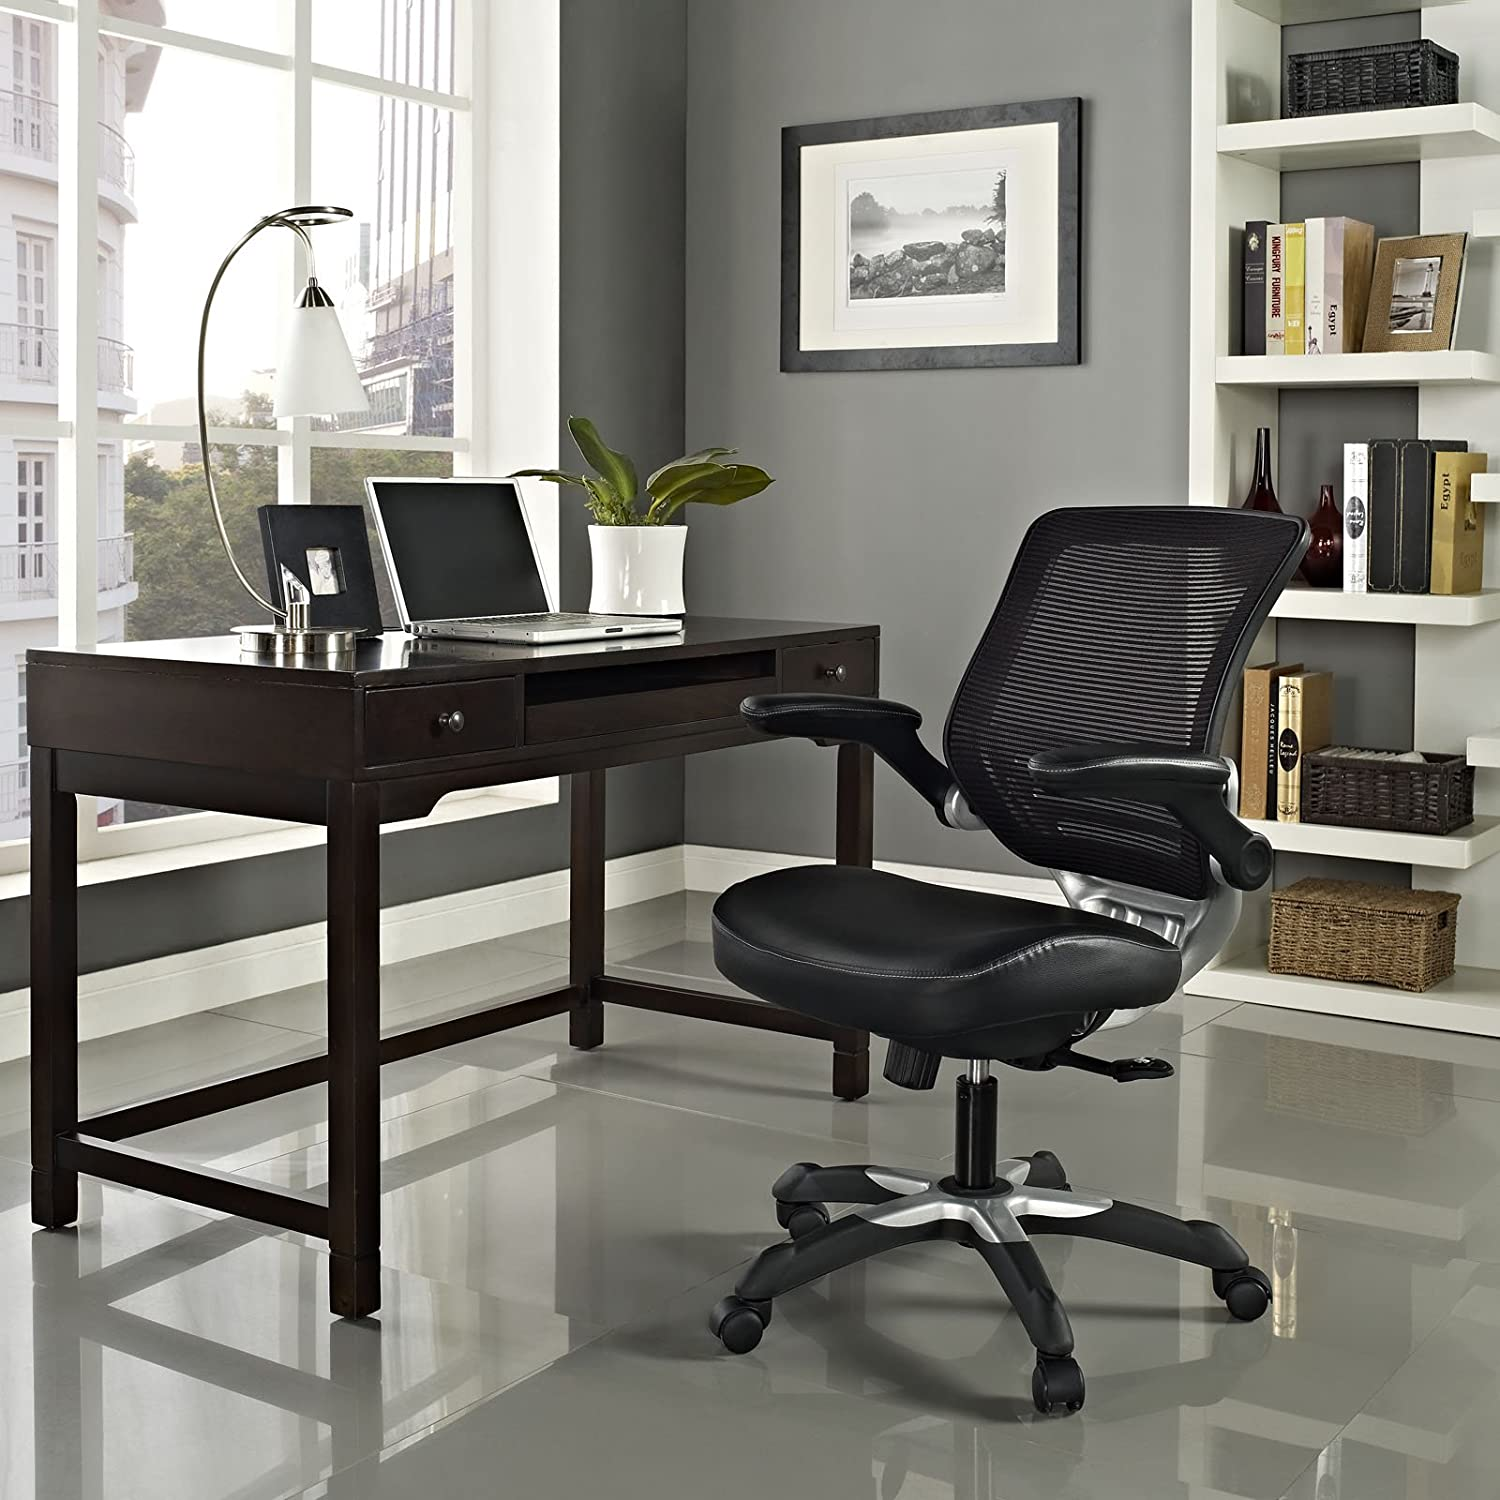 Most comfortable computer chair - Lexmod Edge Office Chair With Mesh Back And Black Leatherette Seat Most Comfortable Office Chair